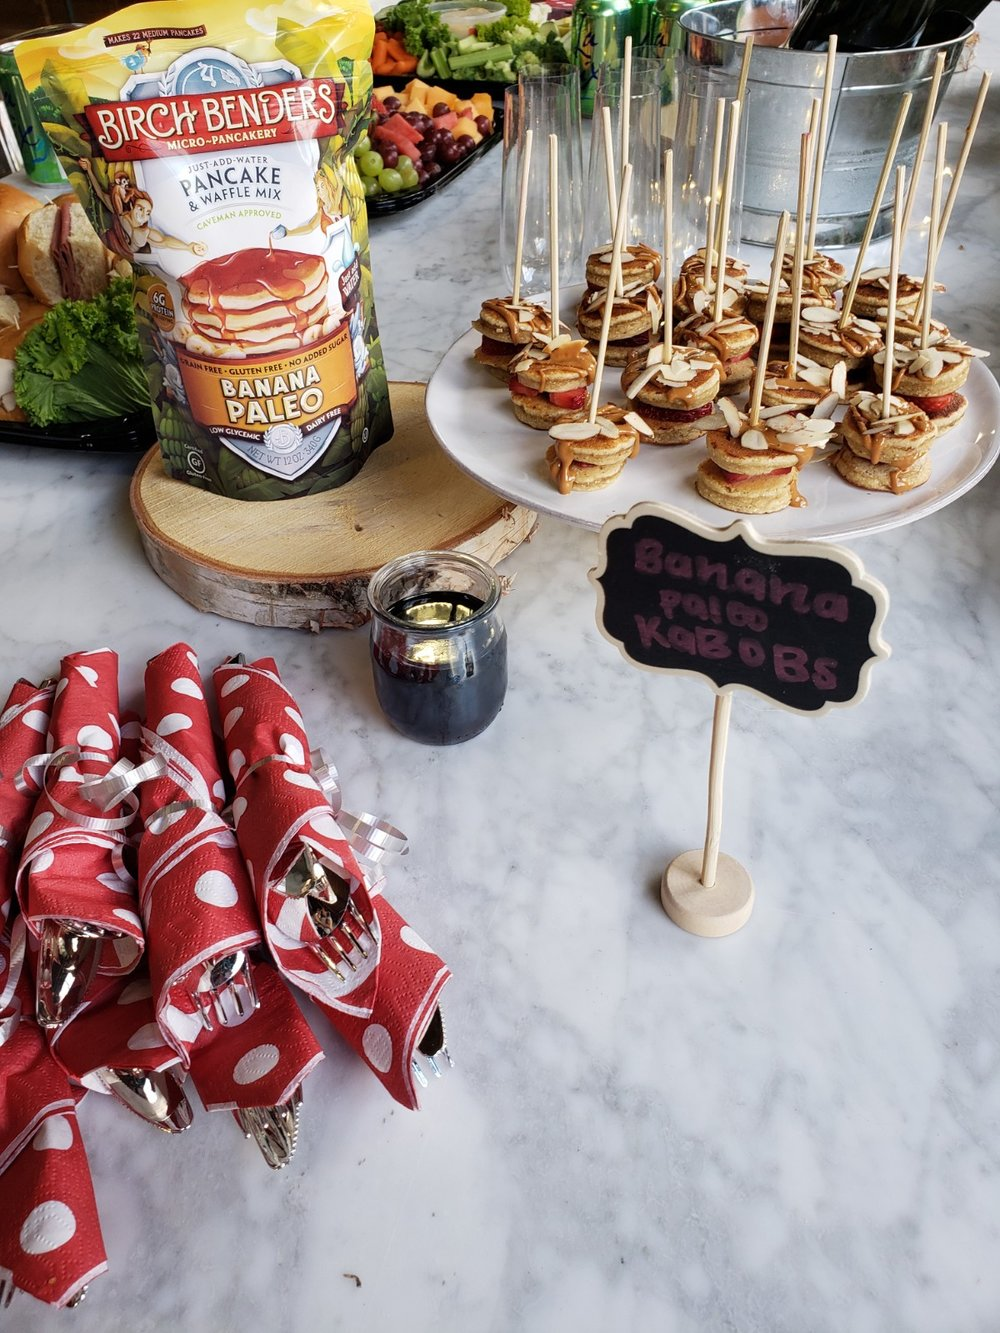 The cutest little pancake kebobs made with wholesome ingredients